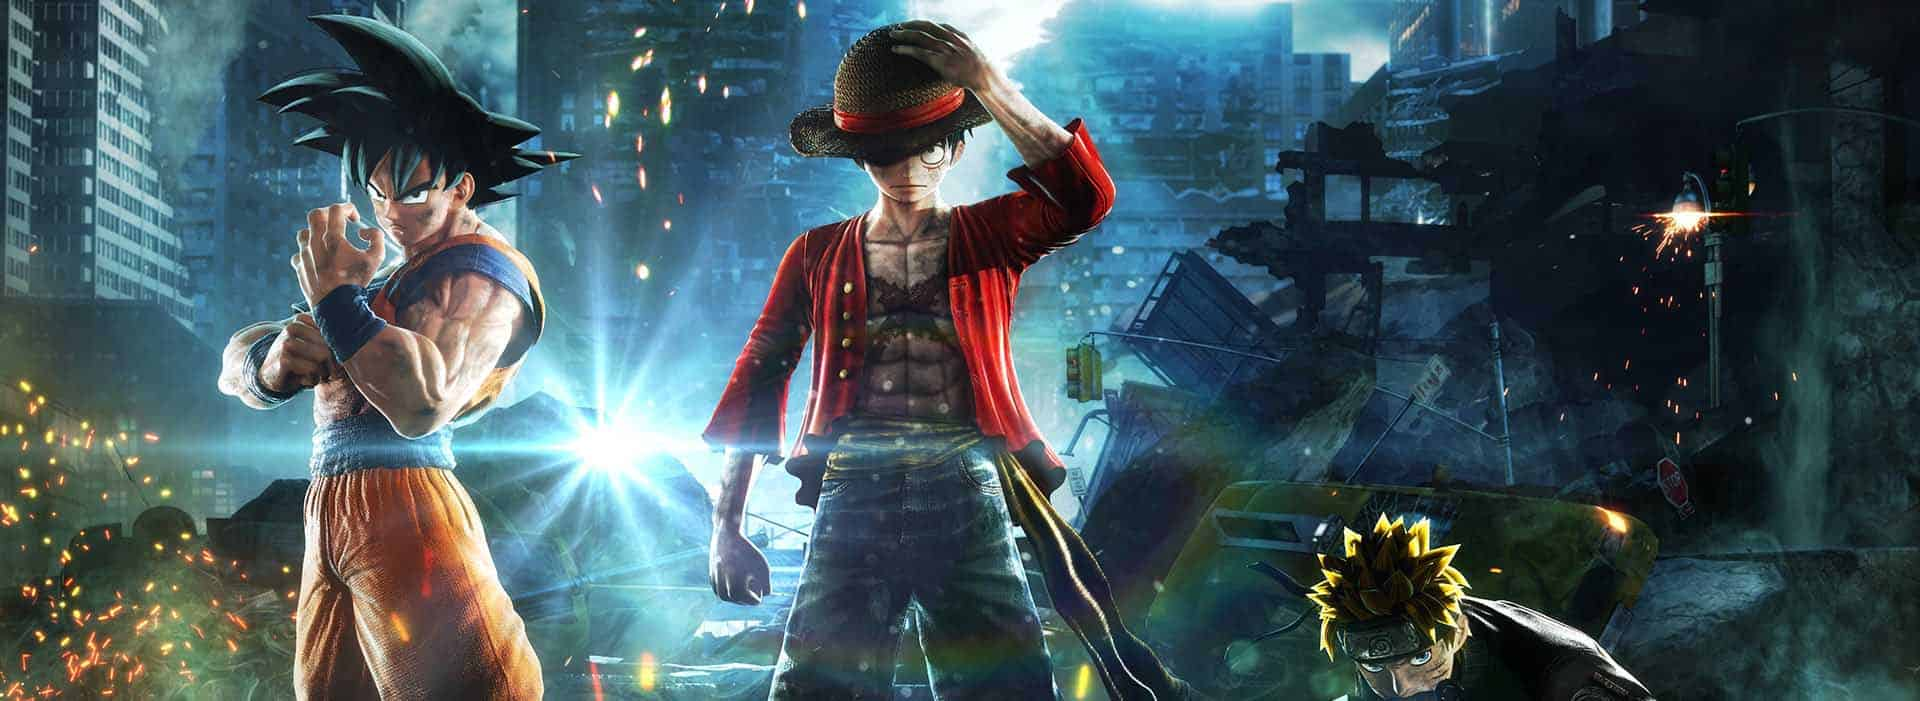 Jump Force Release Date, News, Trailer, and Rumors